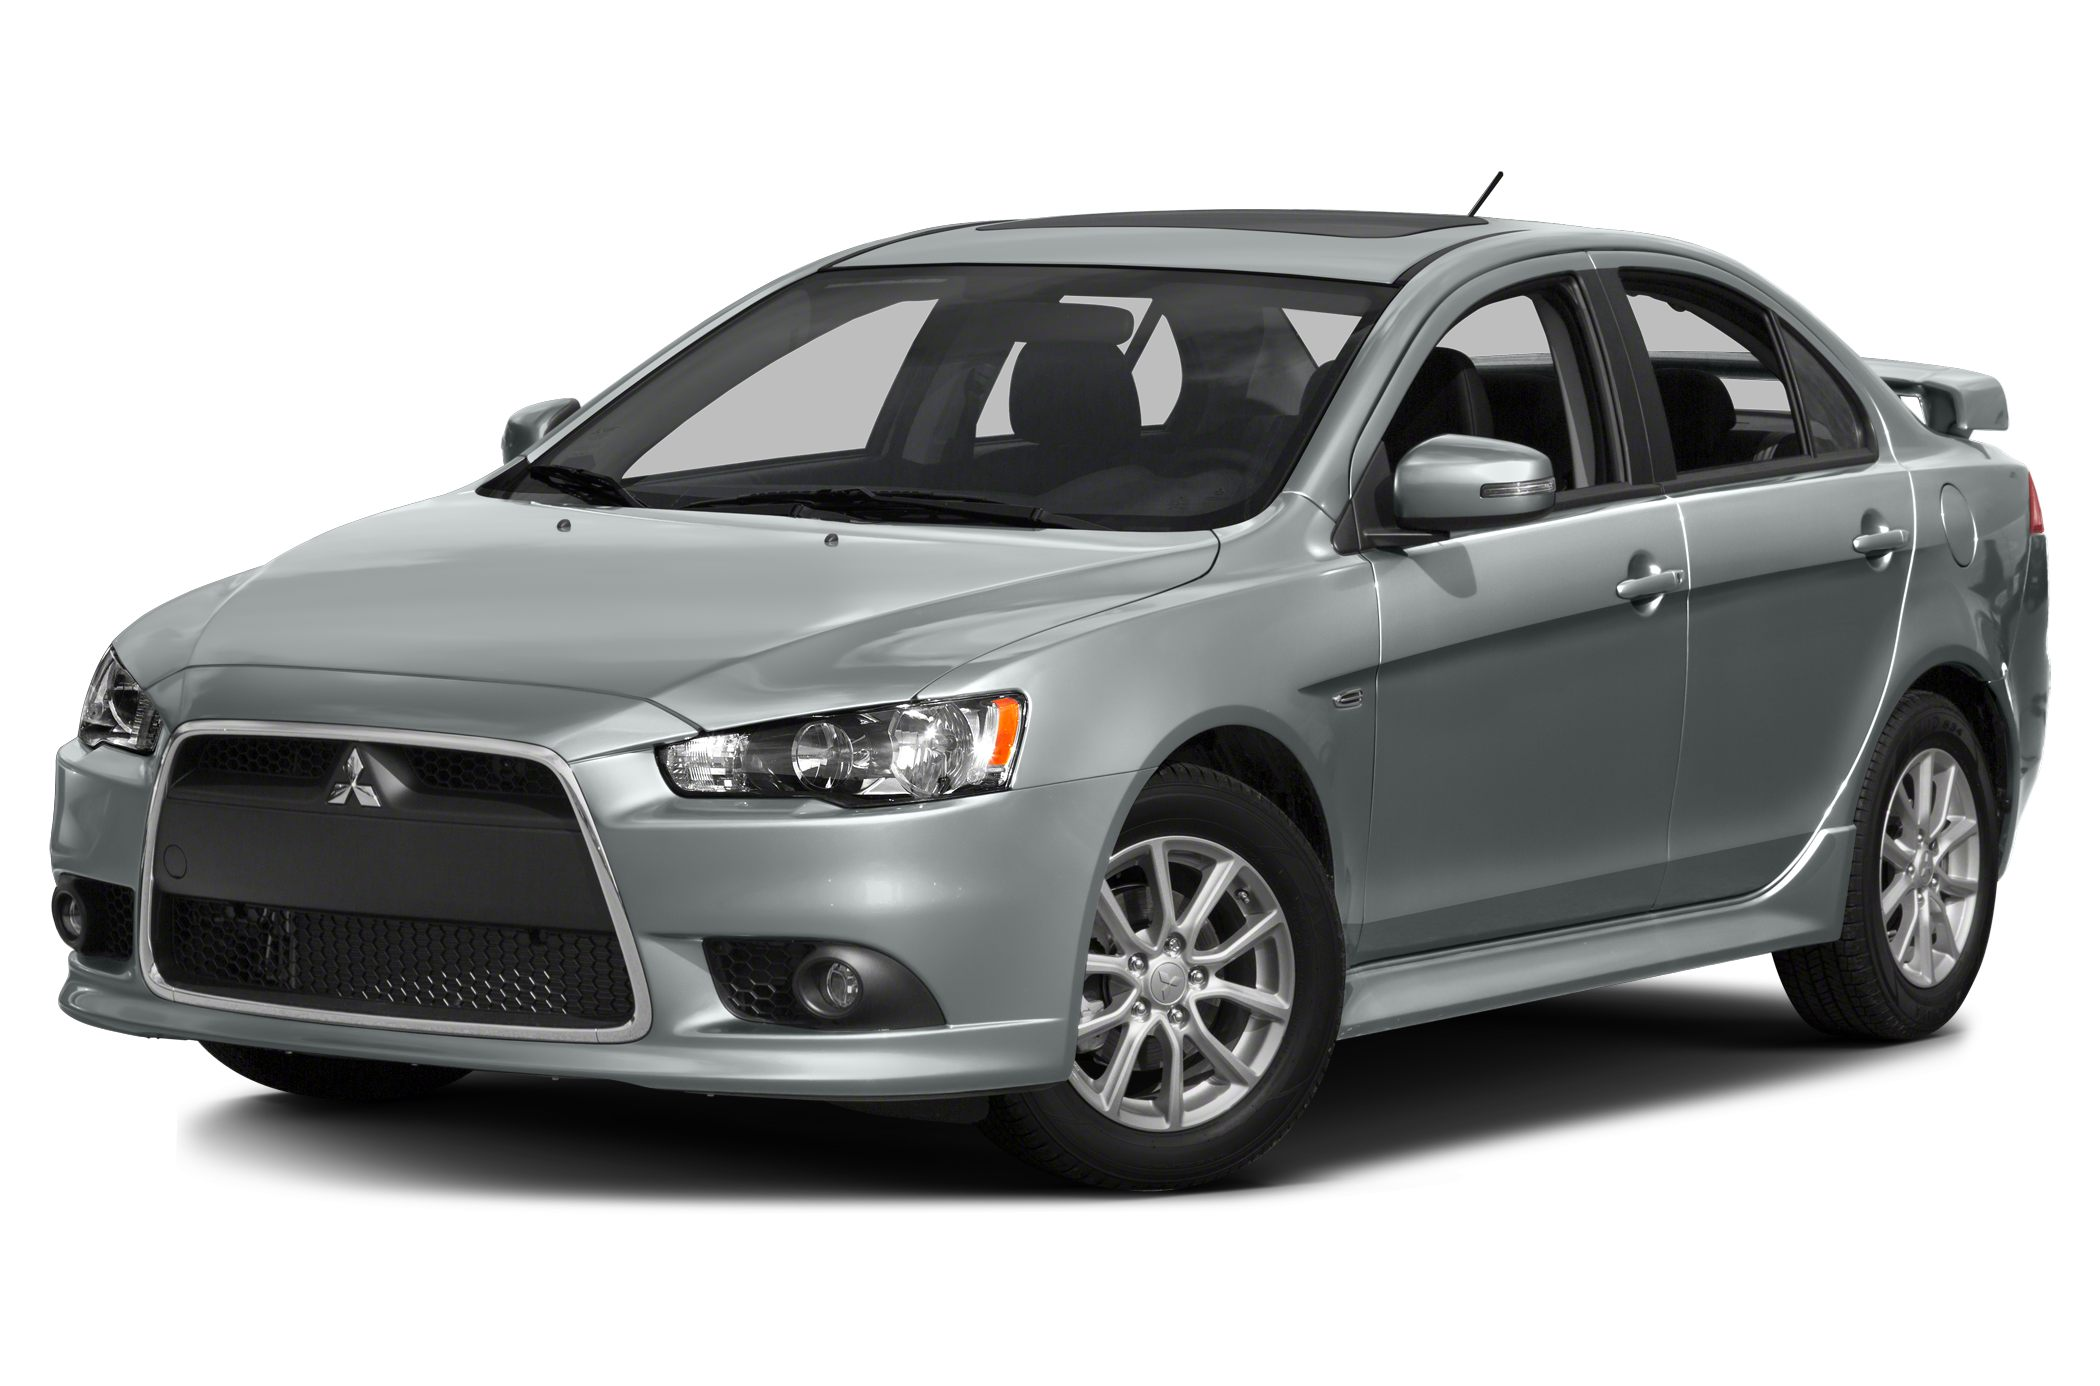 2015 Mitsubishi Lancer SE Sedan for sale in Middleburg Heights for $21,227 with 11 miles